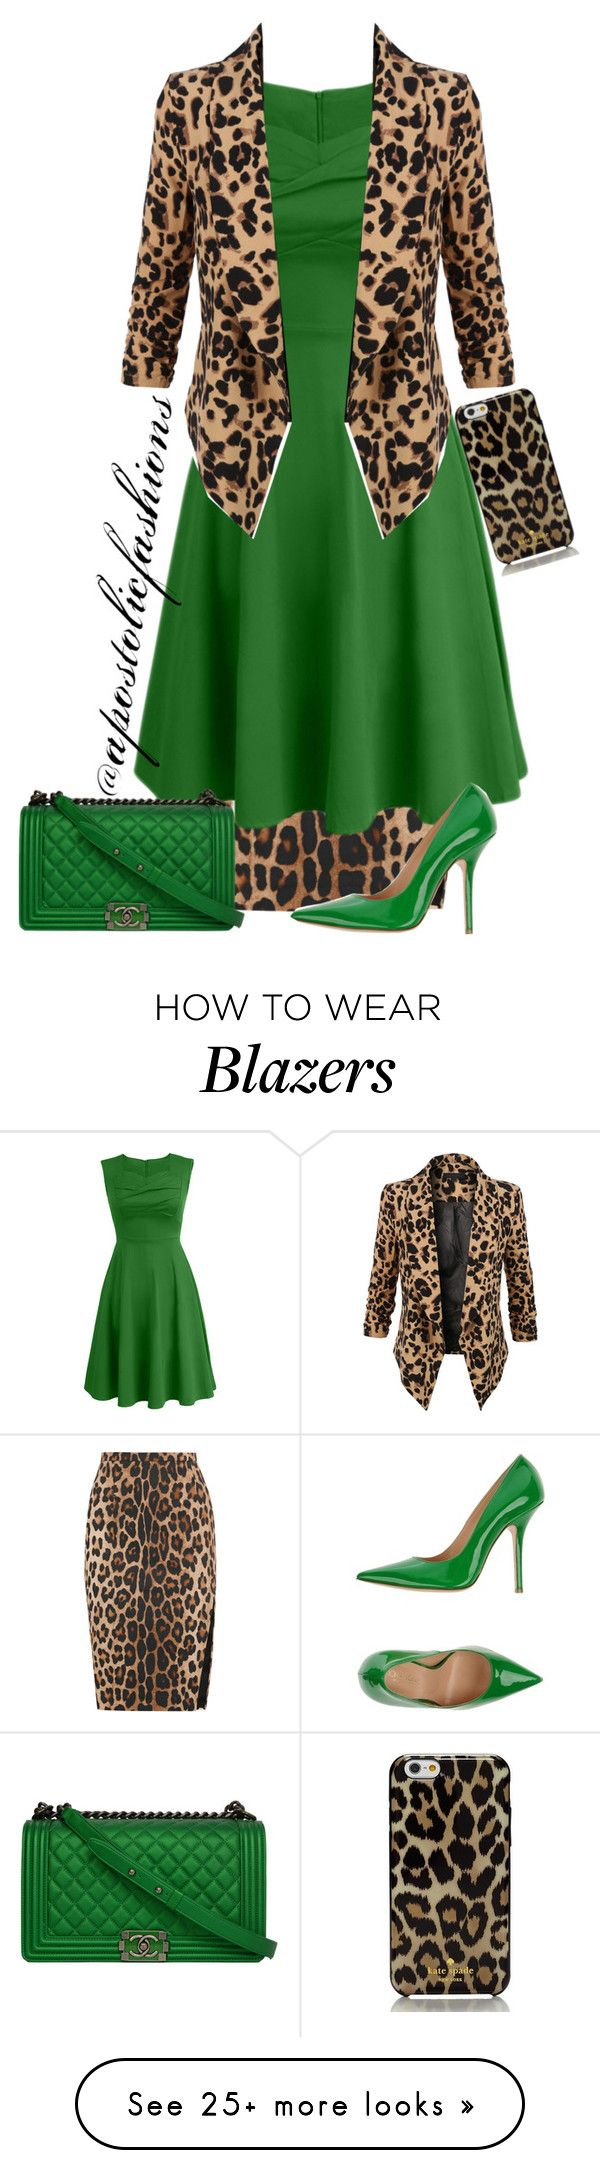 """Apostolic Fashions #944"" by apostolicfashions on Polyvore featuring Altuzarra, Chicnova Fashion, LE3NO, Fiorangelo, Kate Spade and Chanel"